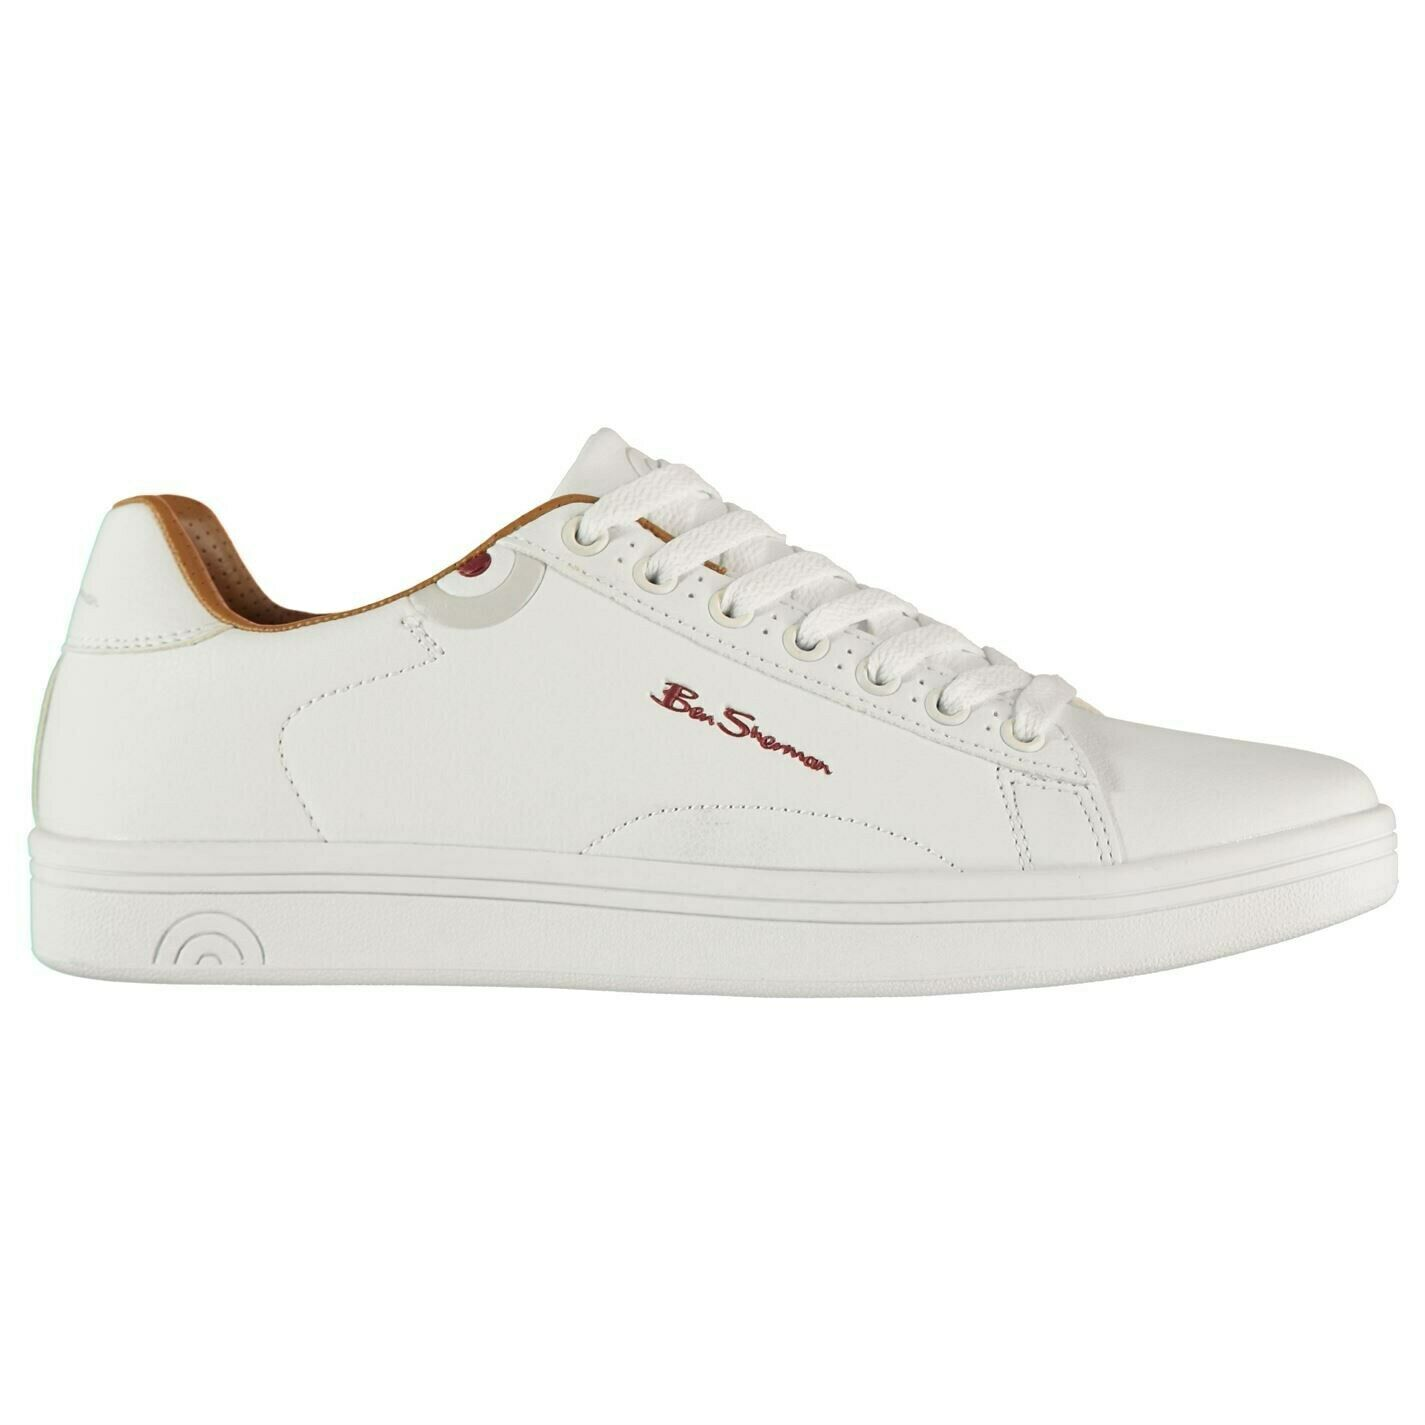 Ben Sherman Mens Storm Trainers Sports schuhe Low Lace Up Padded Ankle Collar